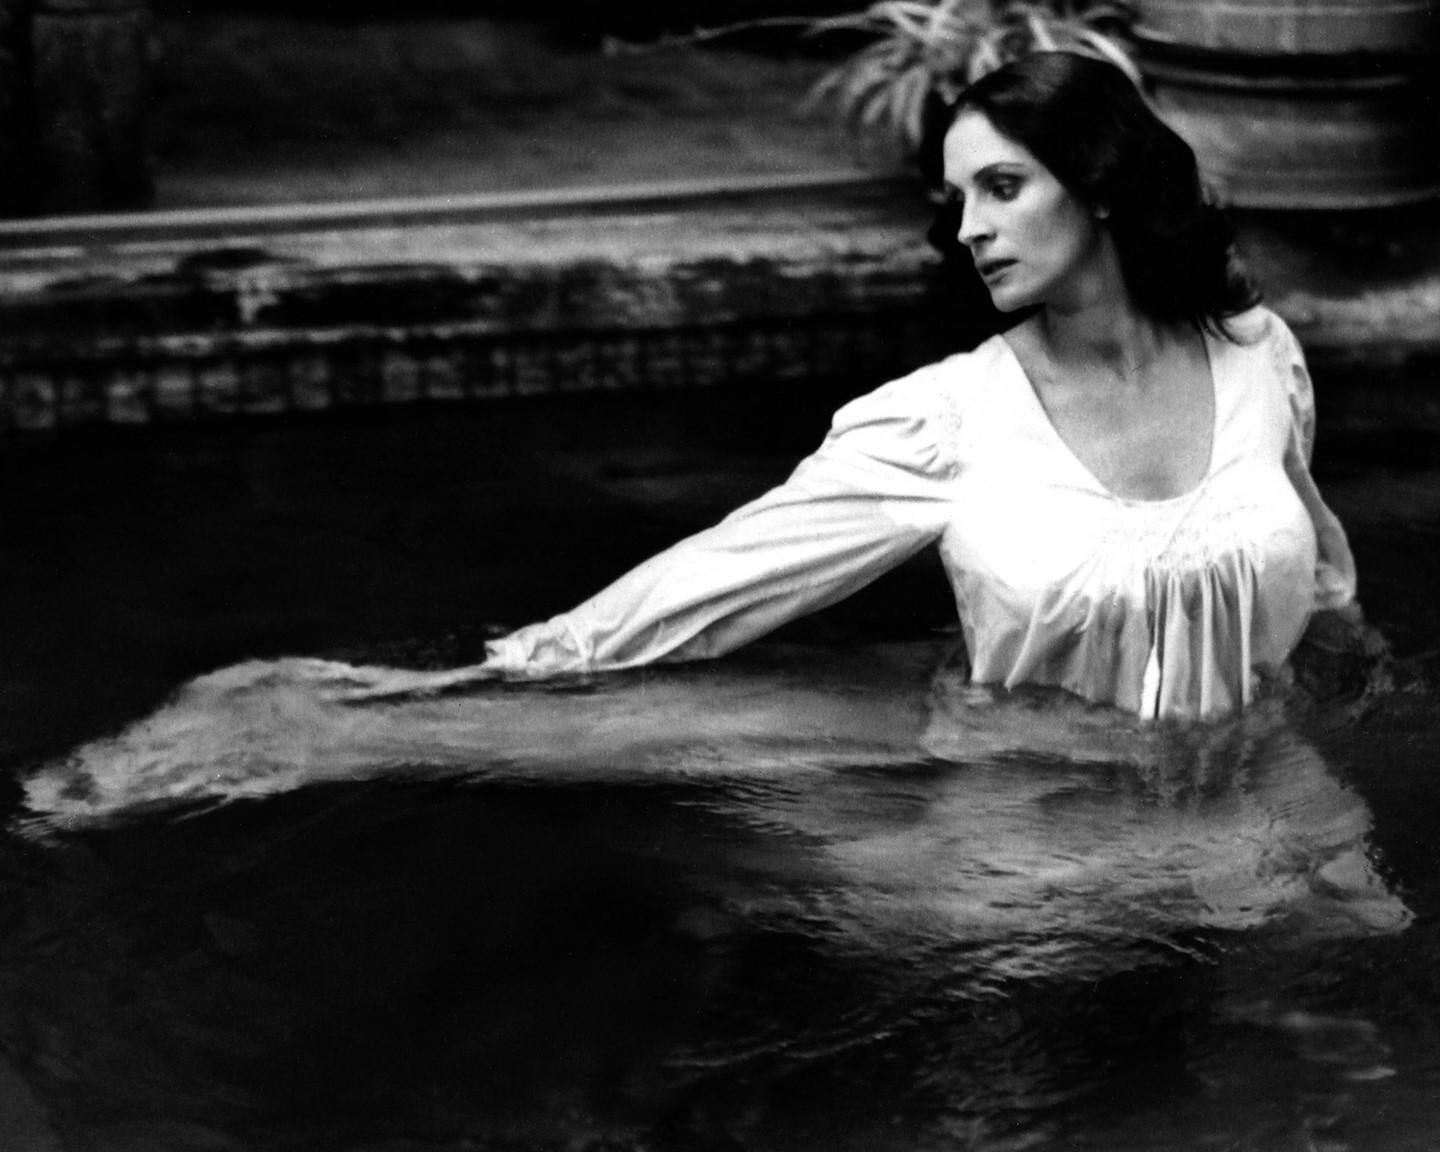 """TGIF! Hoping your weekend is as restful and serene as this Deborah Turbeville photoshoot for the cover story of @nytmag's 2004 Annual Movie Issue.   Under another stunning Turbeville photo, the headline read: """"Can You Imagine Julia Roberts as a Foreign Screen Beauty? (Actually, she's about to become one, sort of.)""""  © Deborah Turbeville/MUUS Collection"""